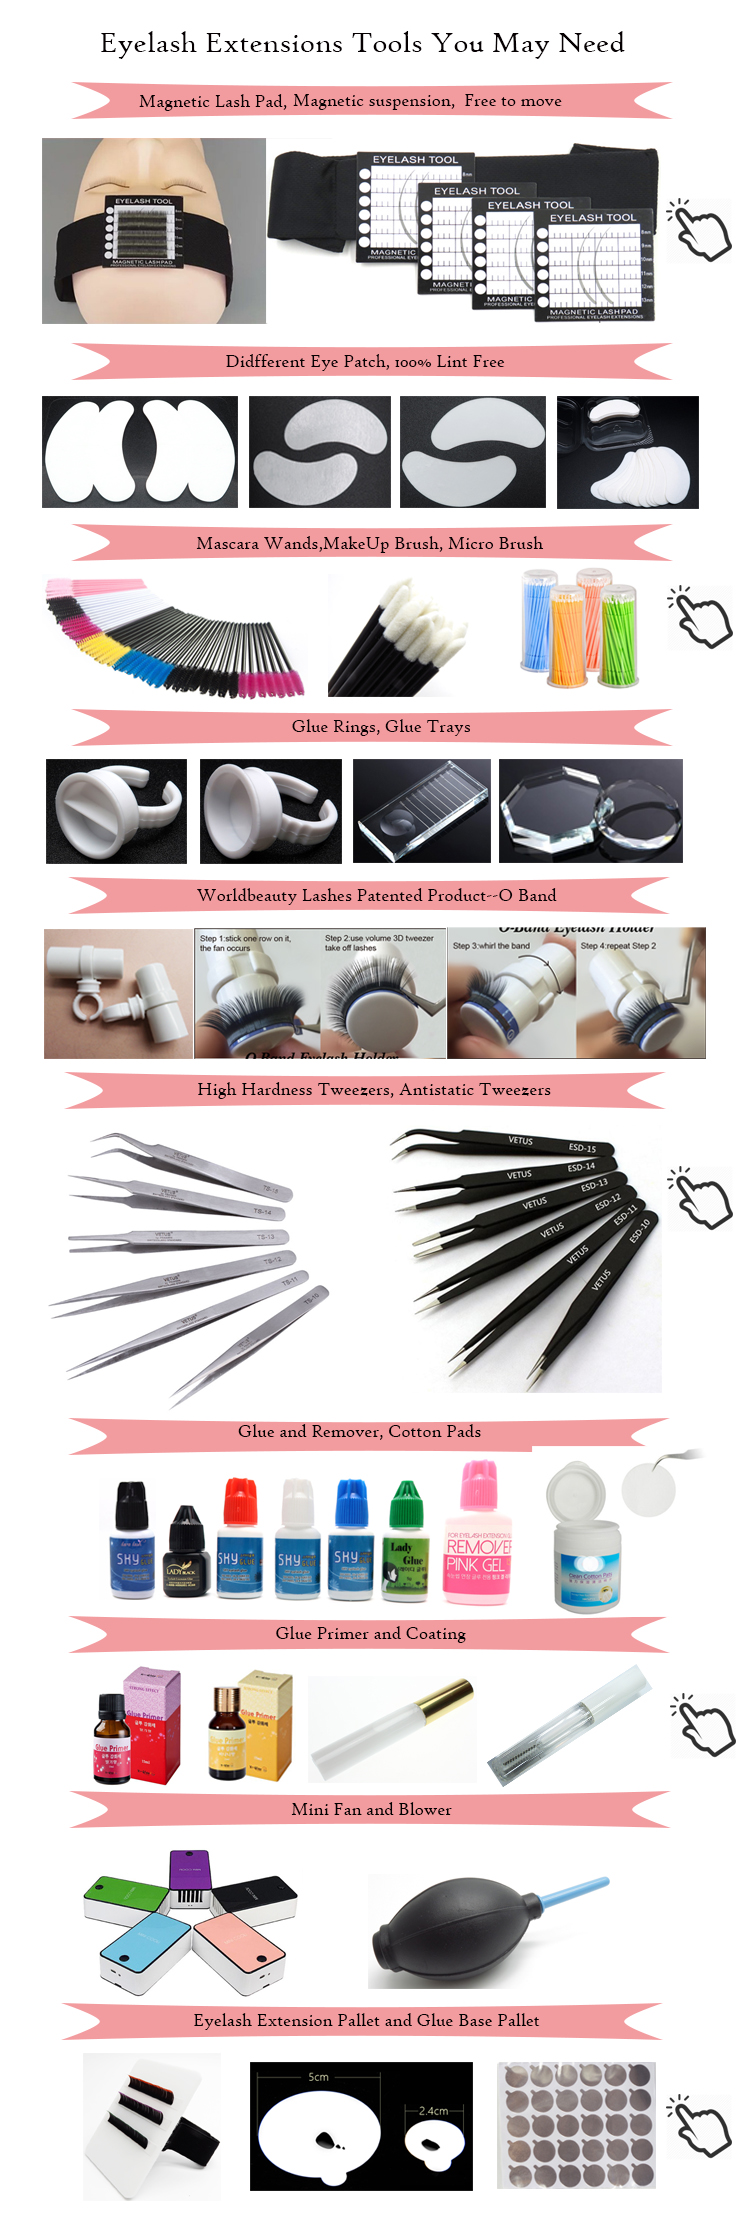 Lash Kit With Mannequin Head Lash Tinting Kit Lash Tool Cleaner